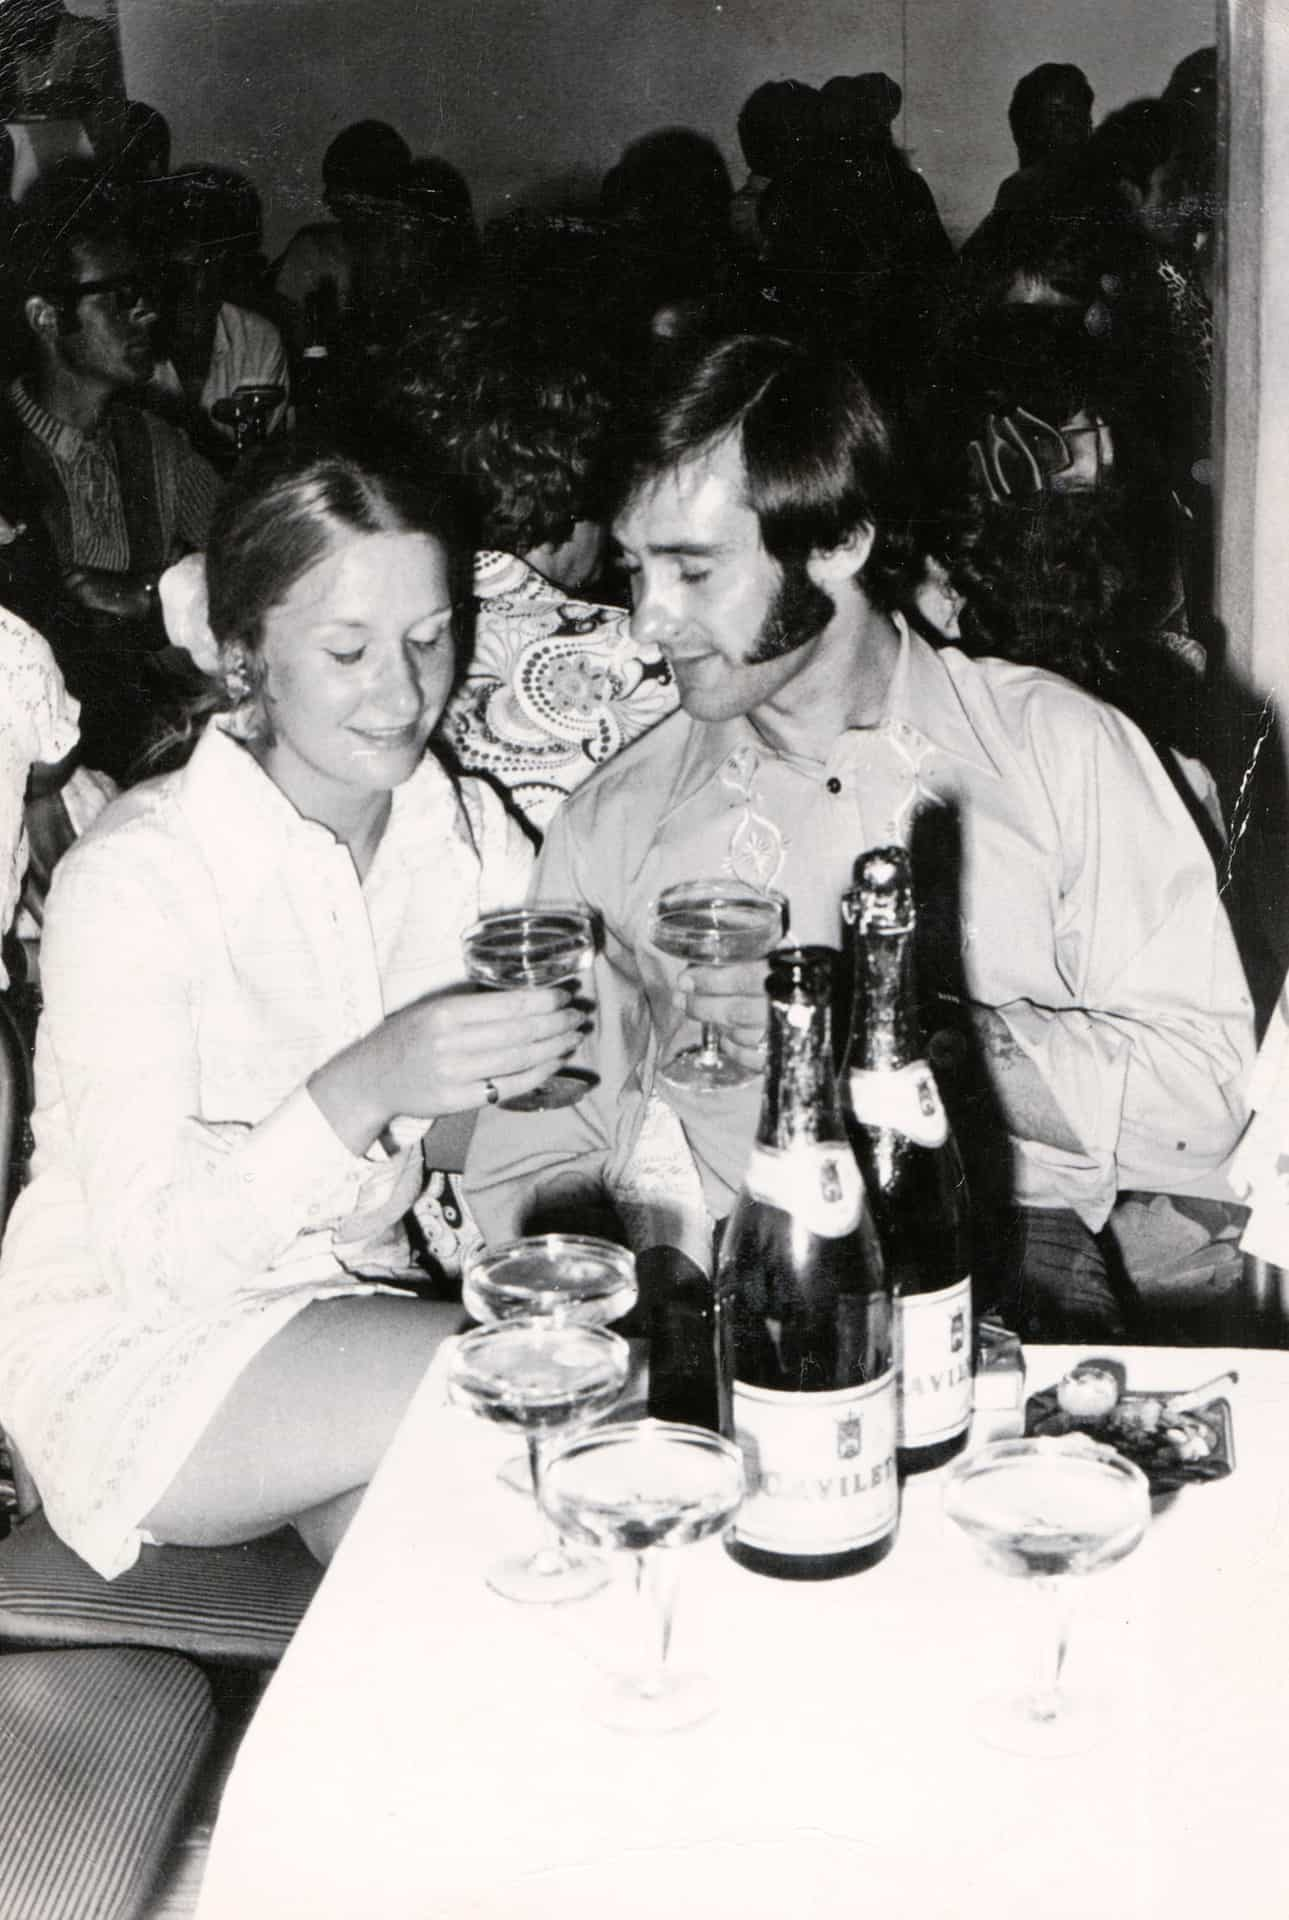 Mum and dad in Ibiza in 1971, a year before they got married in 1972.